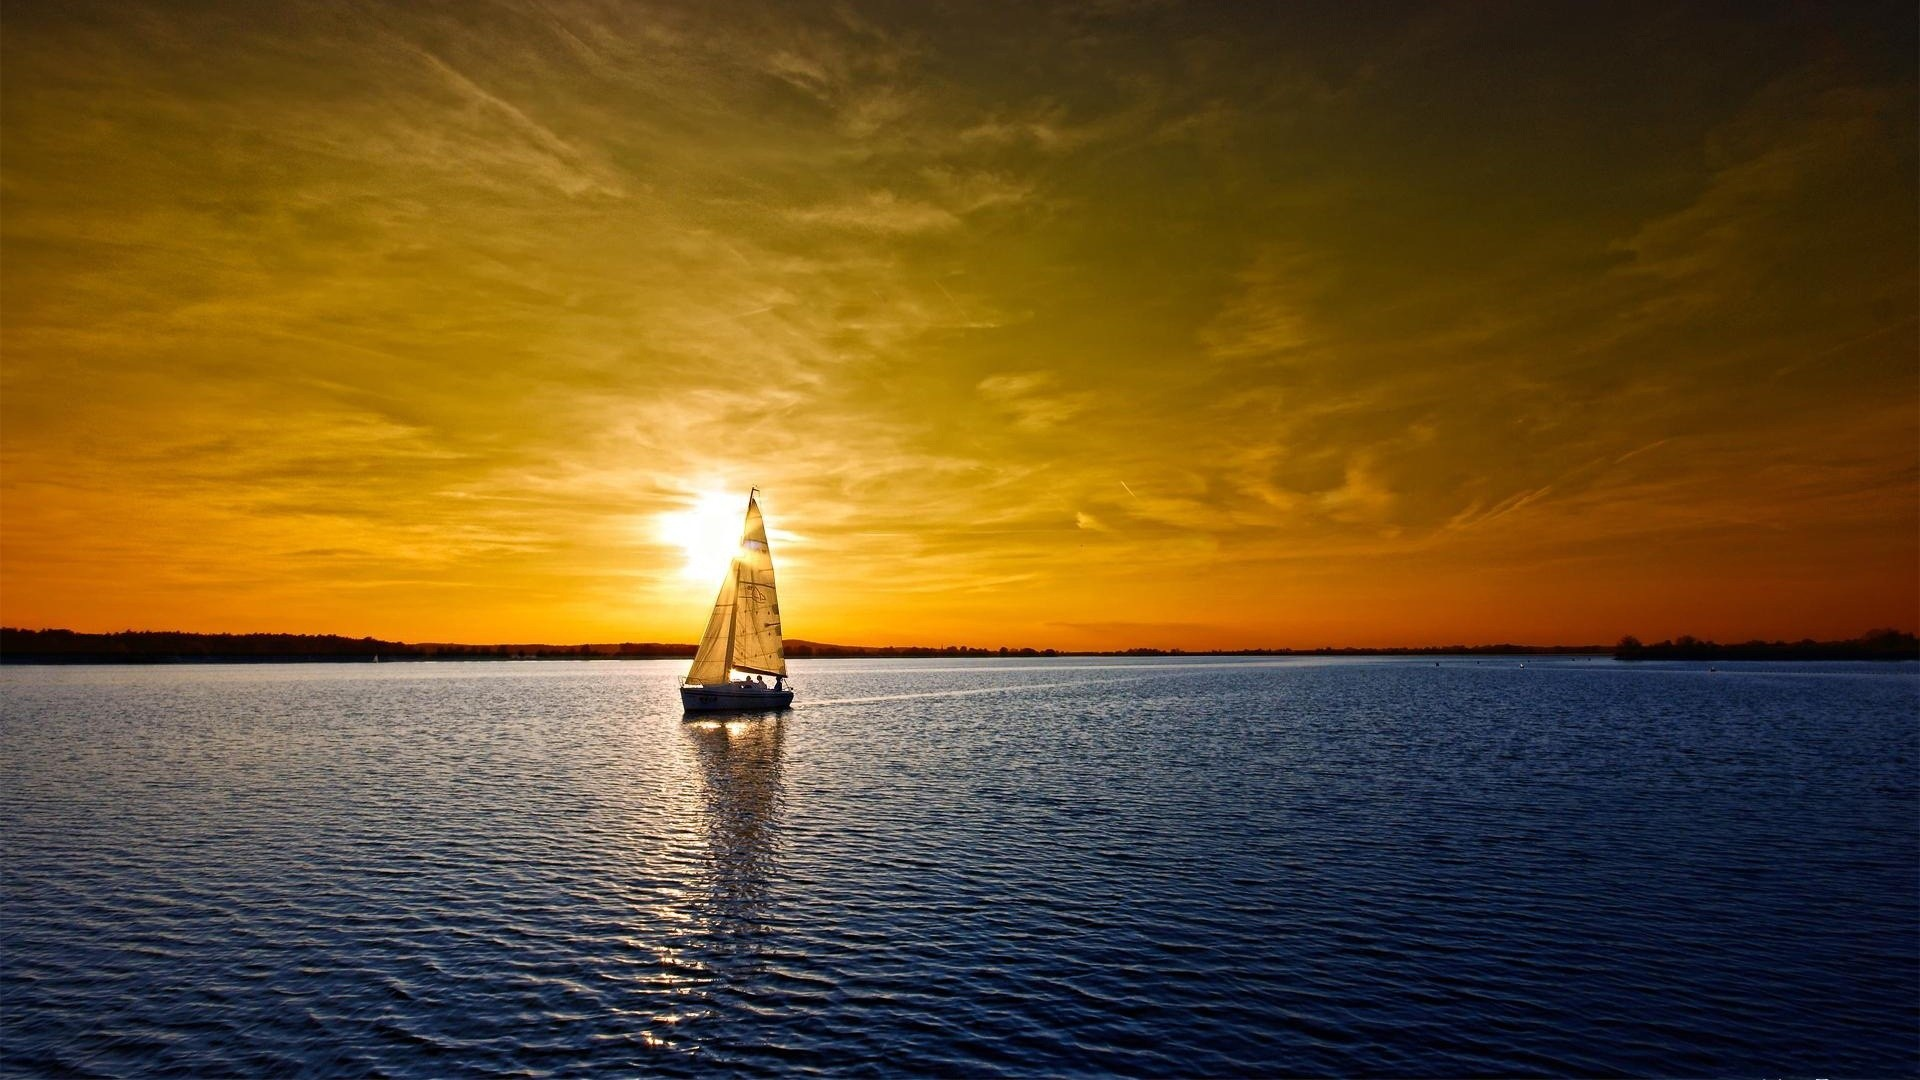 Sunset Wallpapers | Free Download HD Latest Beautiful Wonderful Images